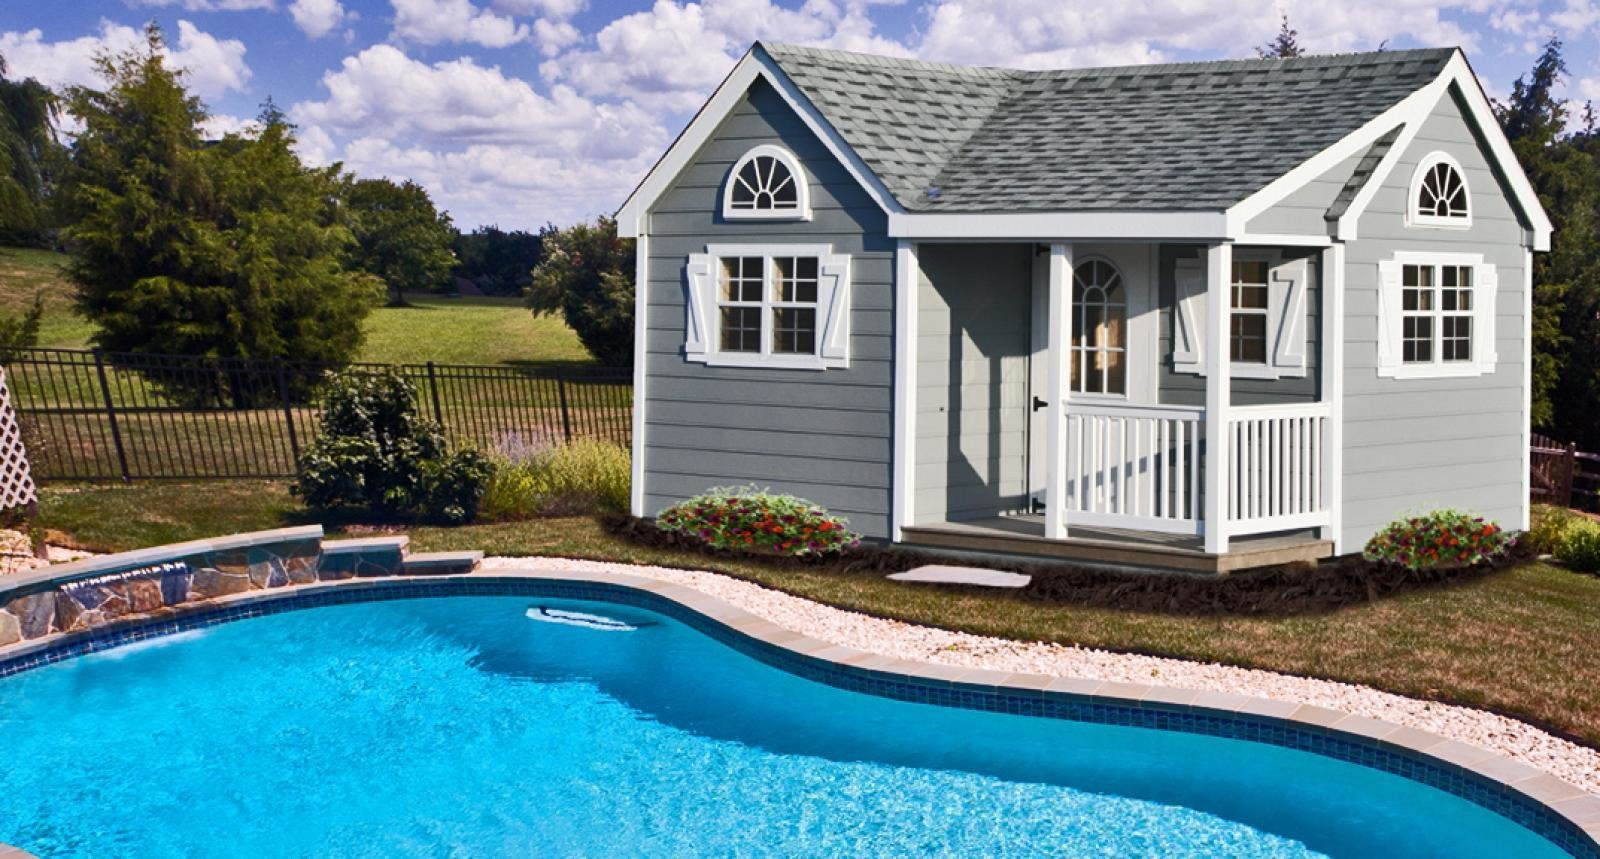 A Horizon Structures pool house shed is the ultimate in pool-side comfort and utility. Use as storage for the kids' pool toys, a guest changing area, or as a place to keep your pool chemicals, pump and filtering system.